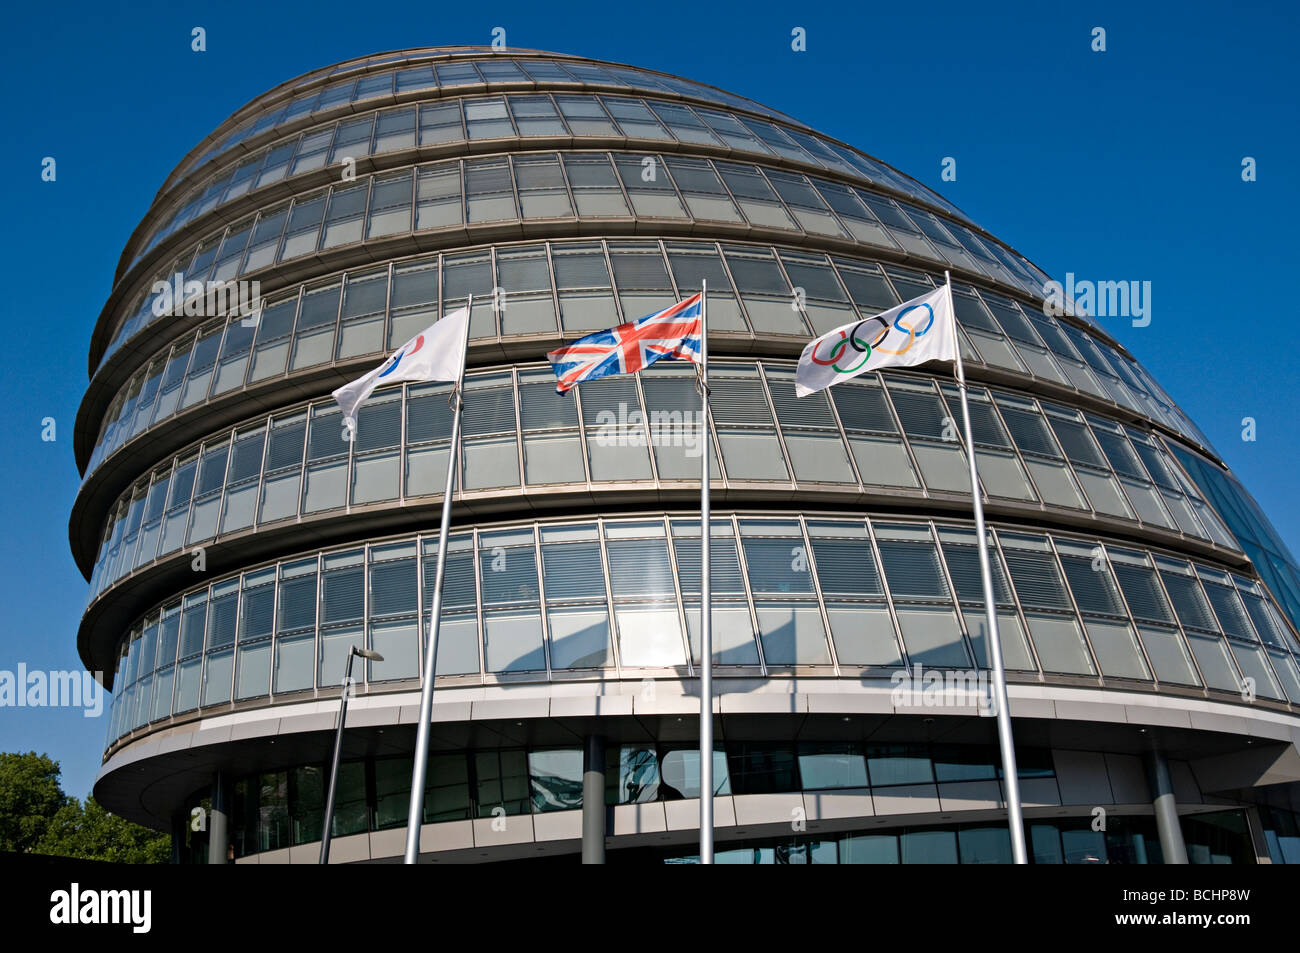 London Assembly Building - Stock Image